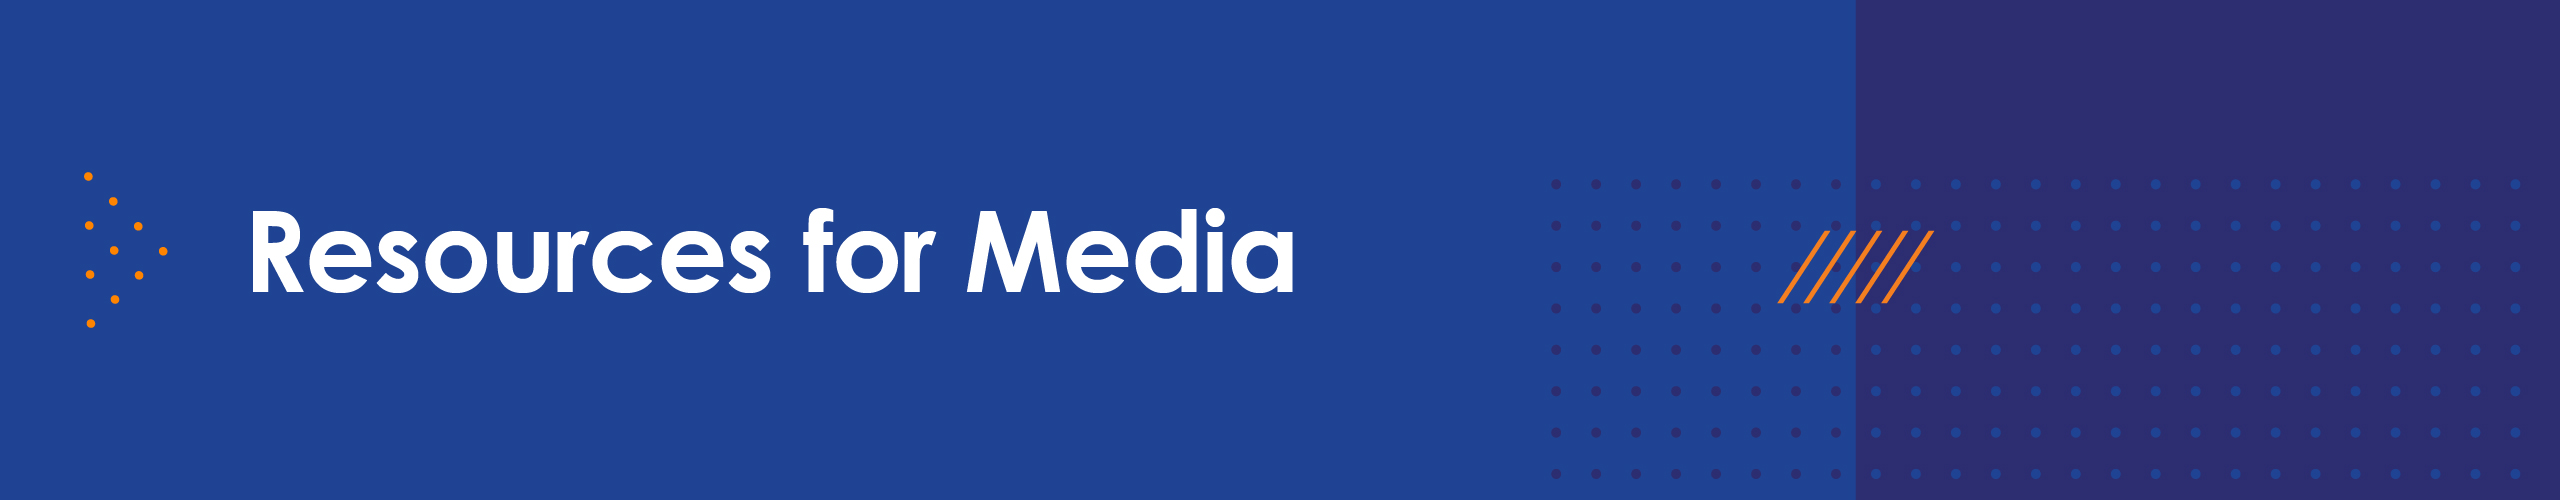 Resources for media